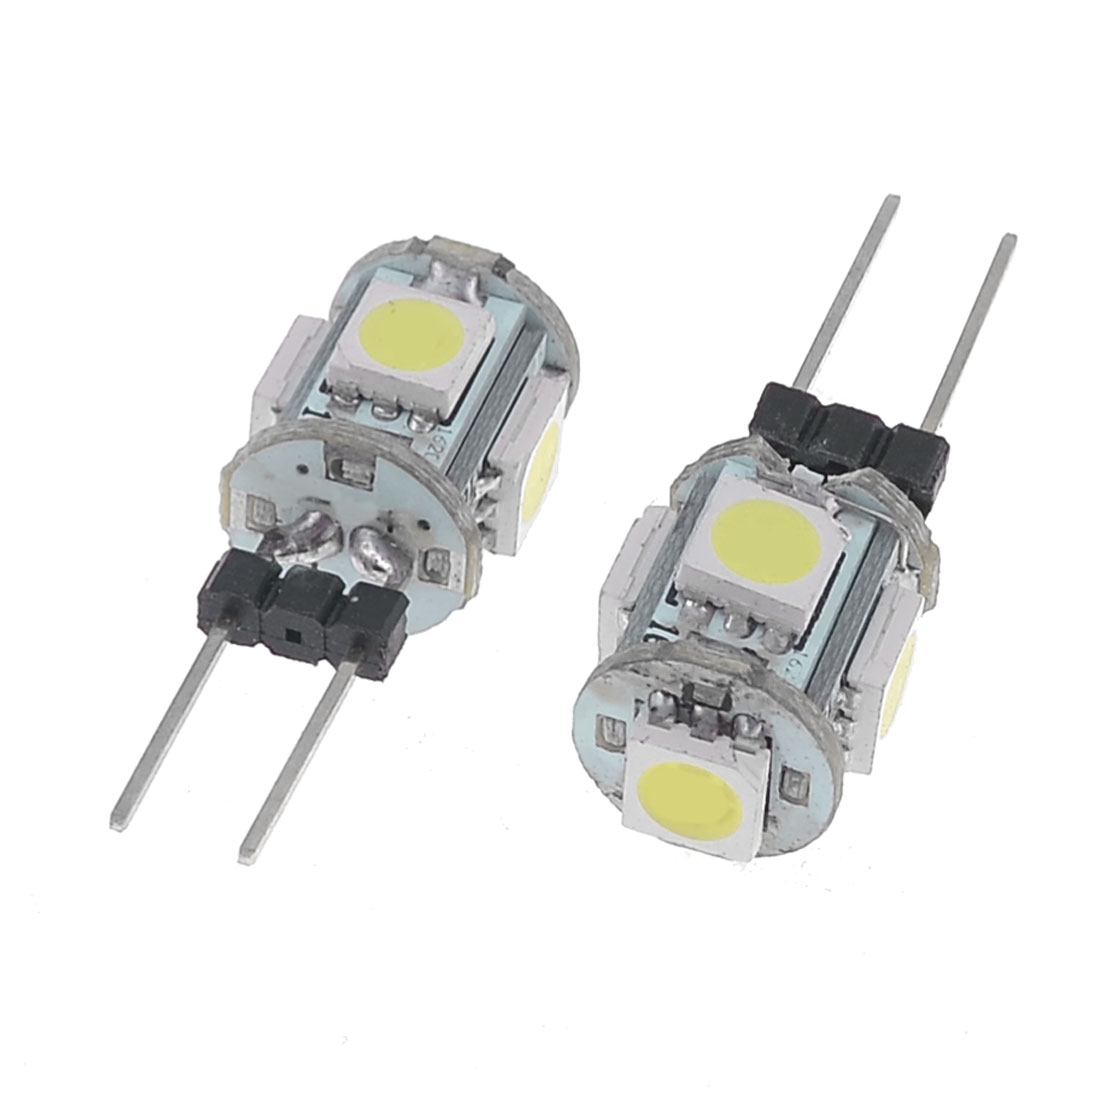 Pair Auto Car Vertical Pin DC 12V G4 5050 5 SMD LED Bulb Light White